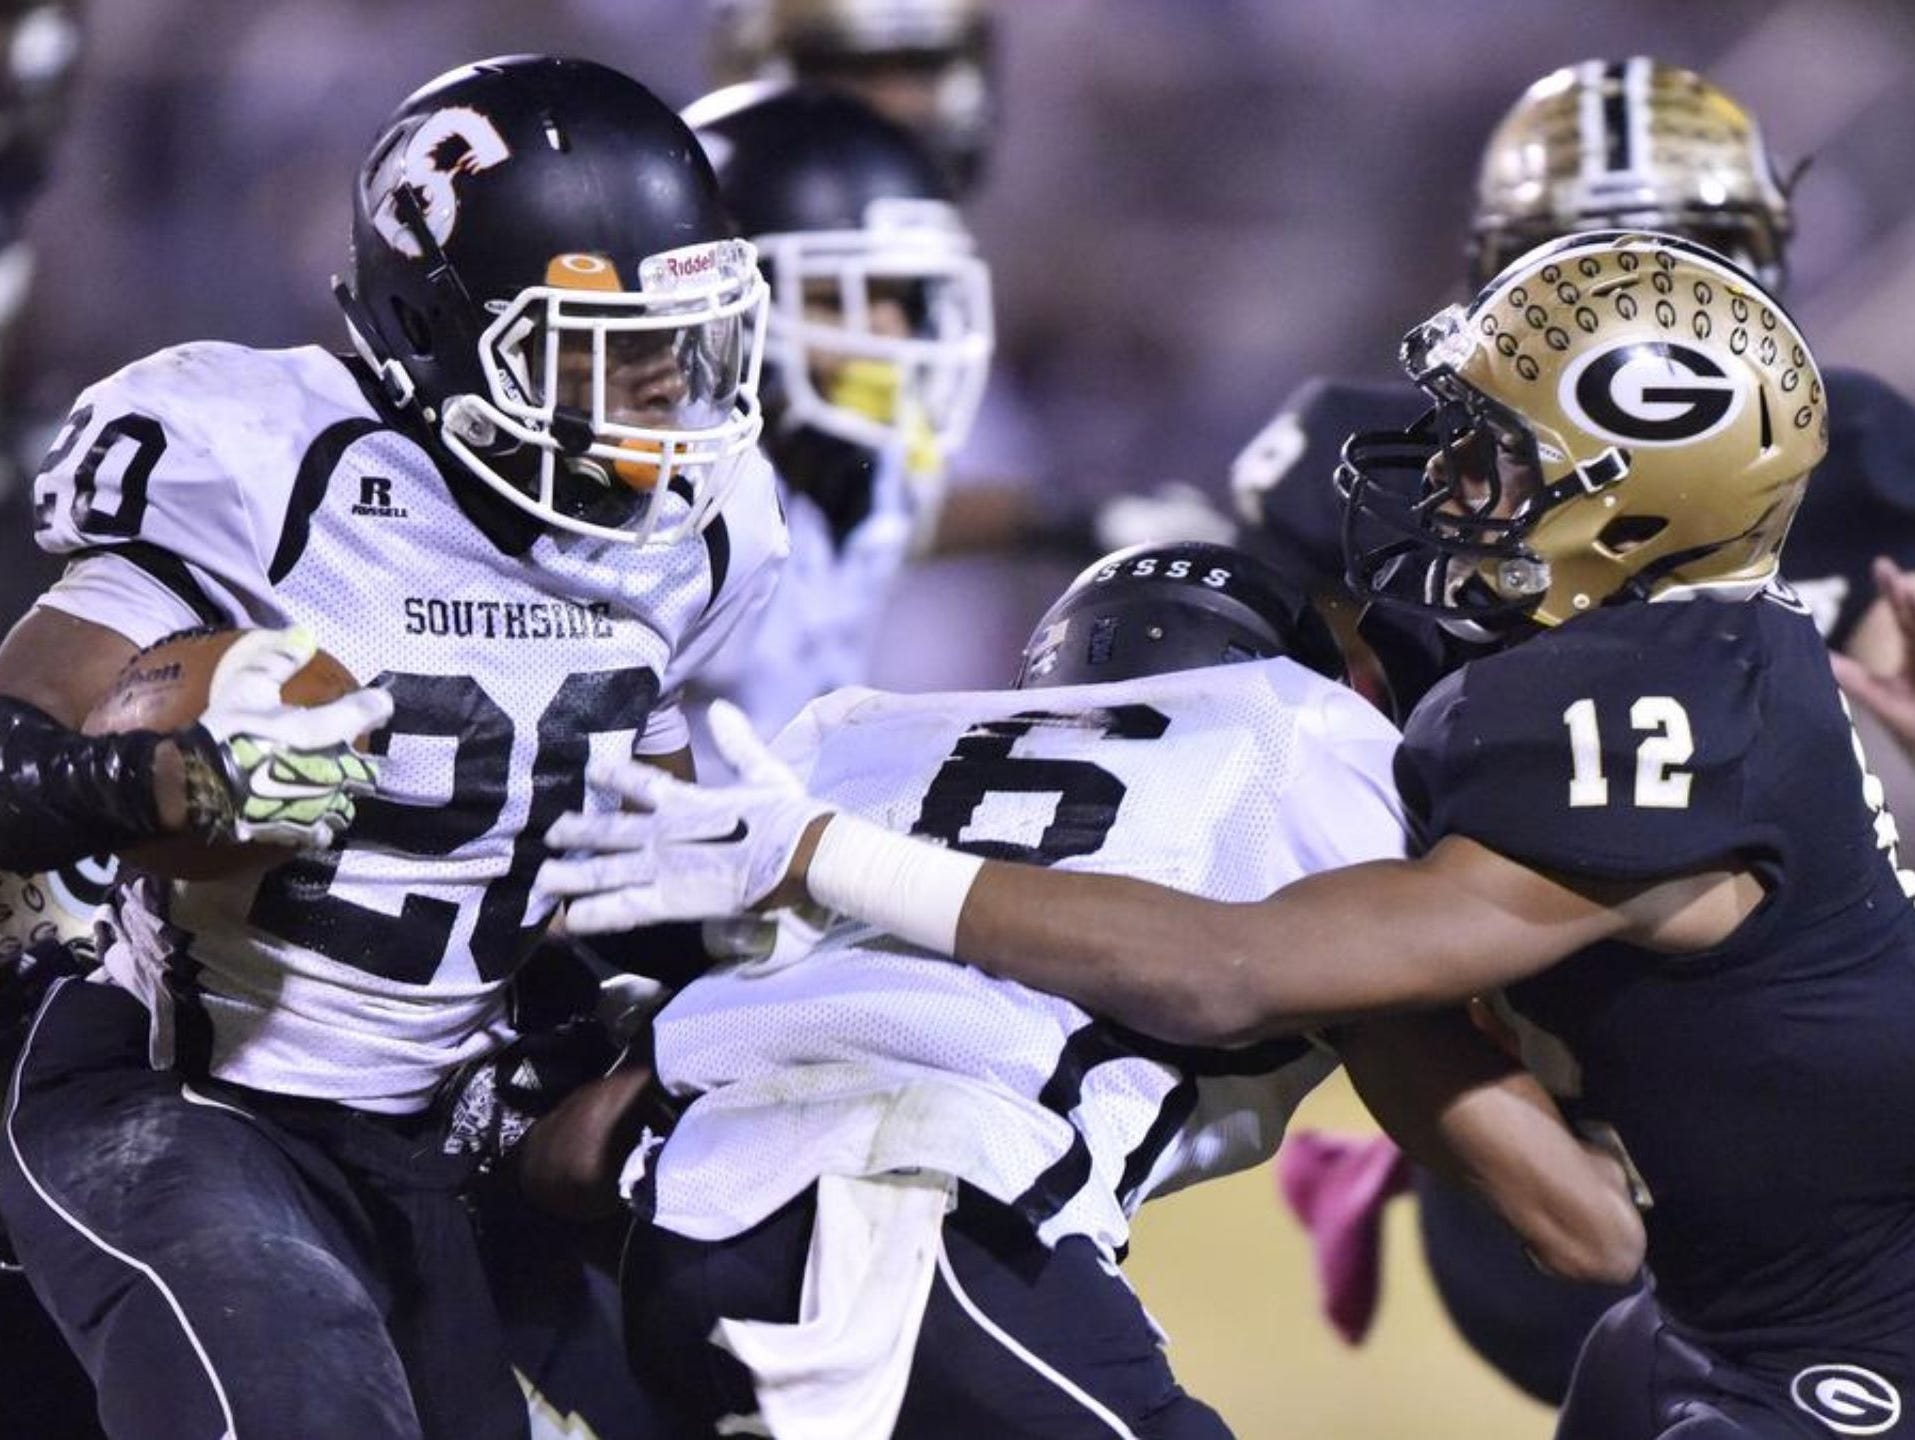 Running back Quavian White (20) and the Southside Tigers will play at Chapin in a Class AAA first-round playoff game Friday night.